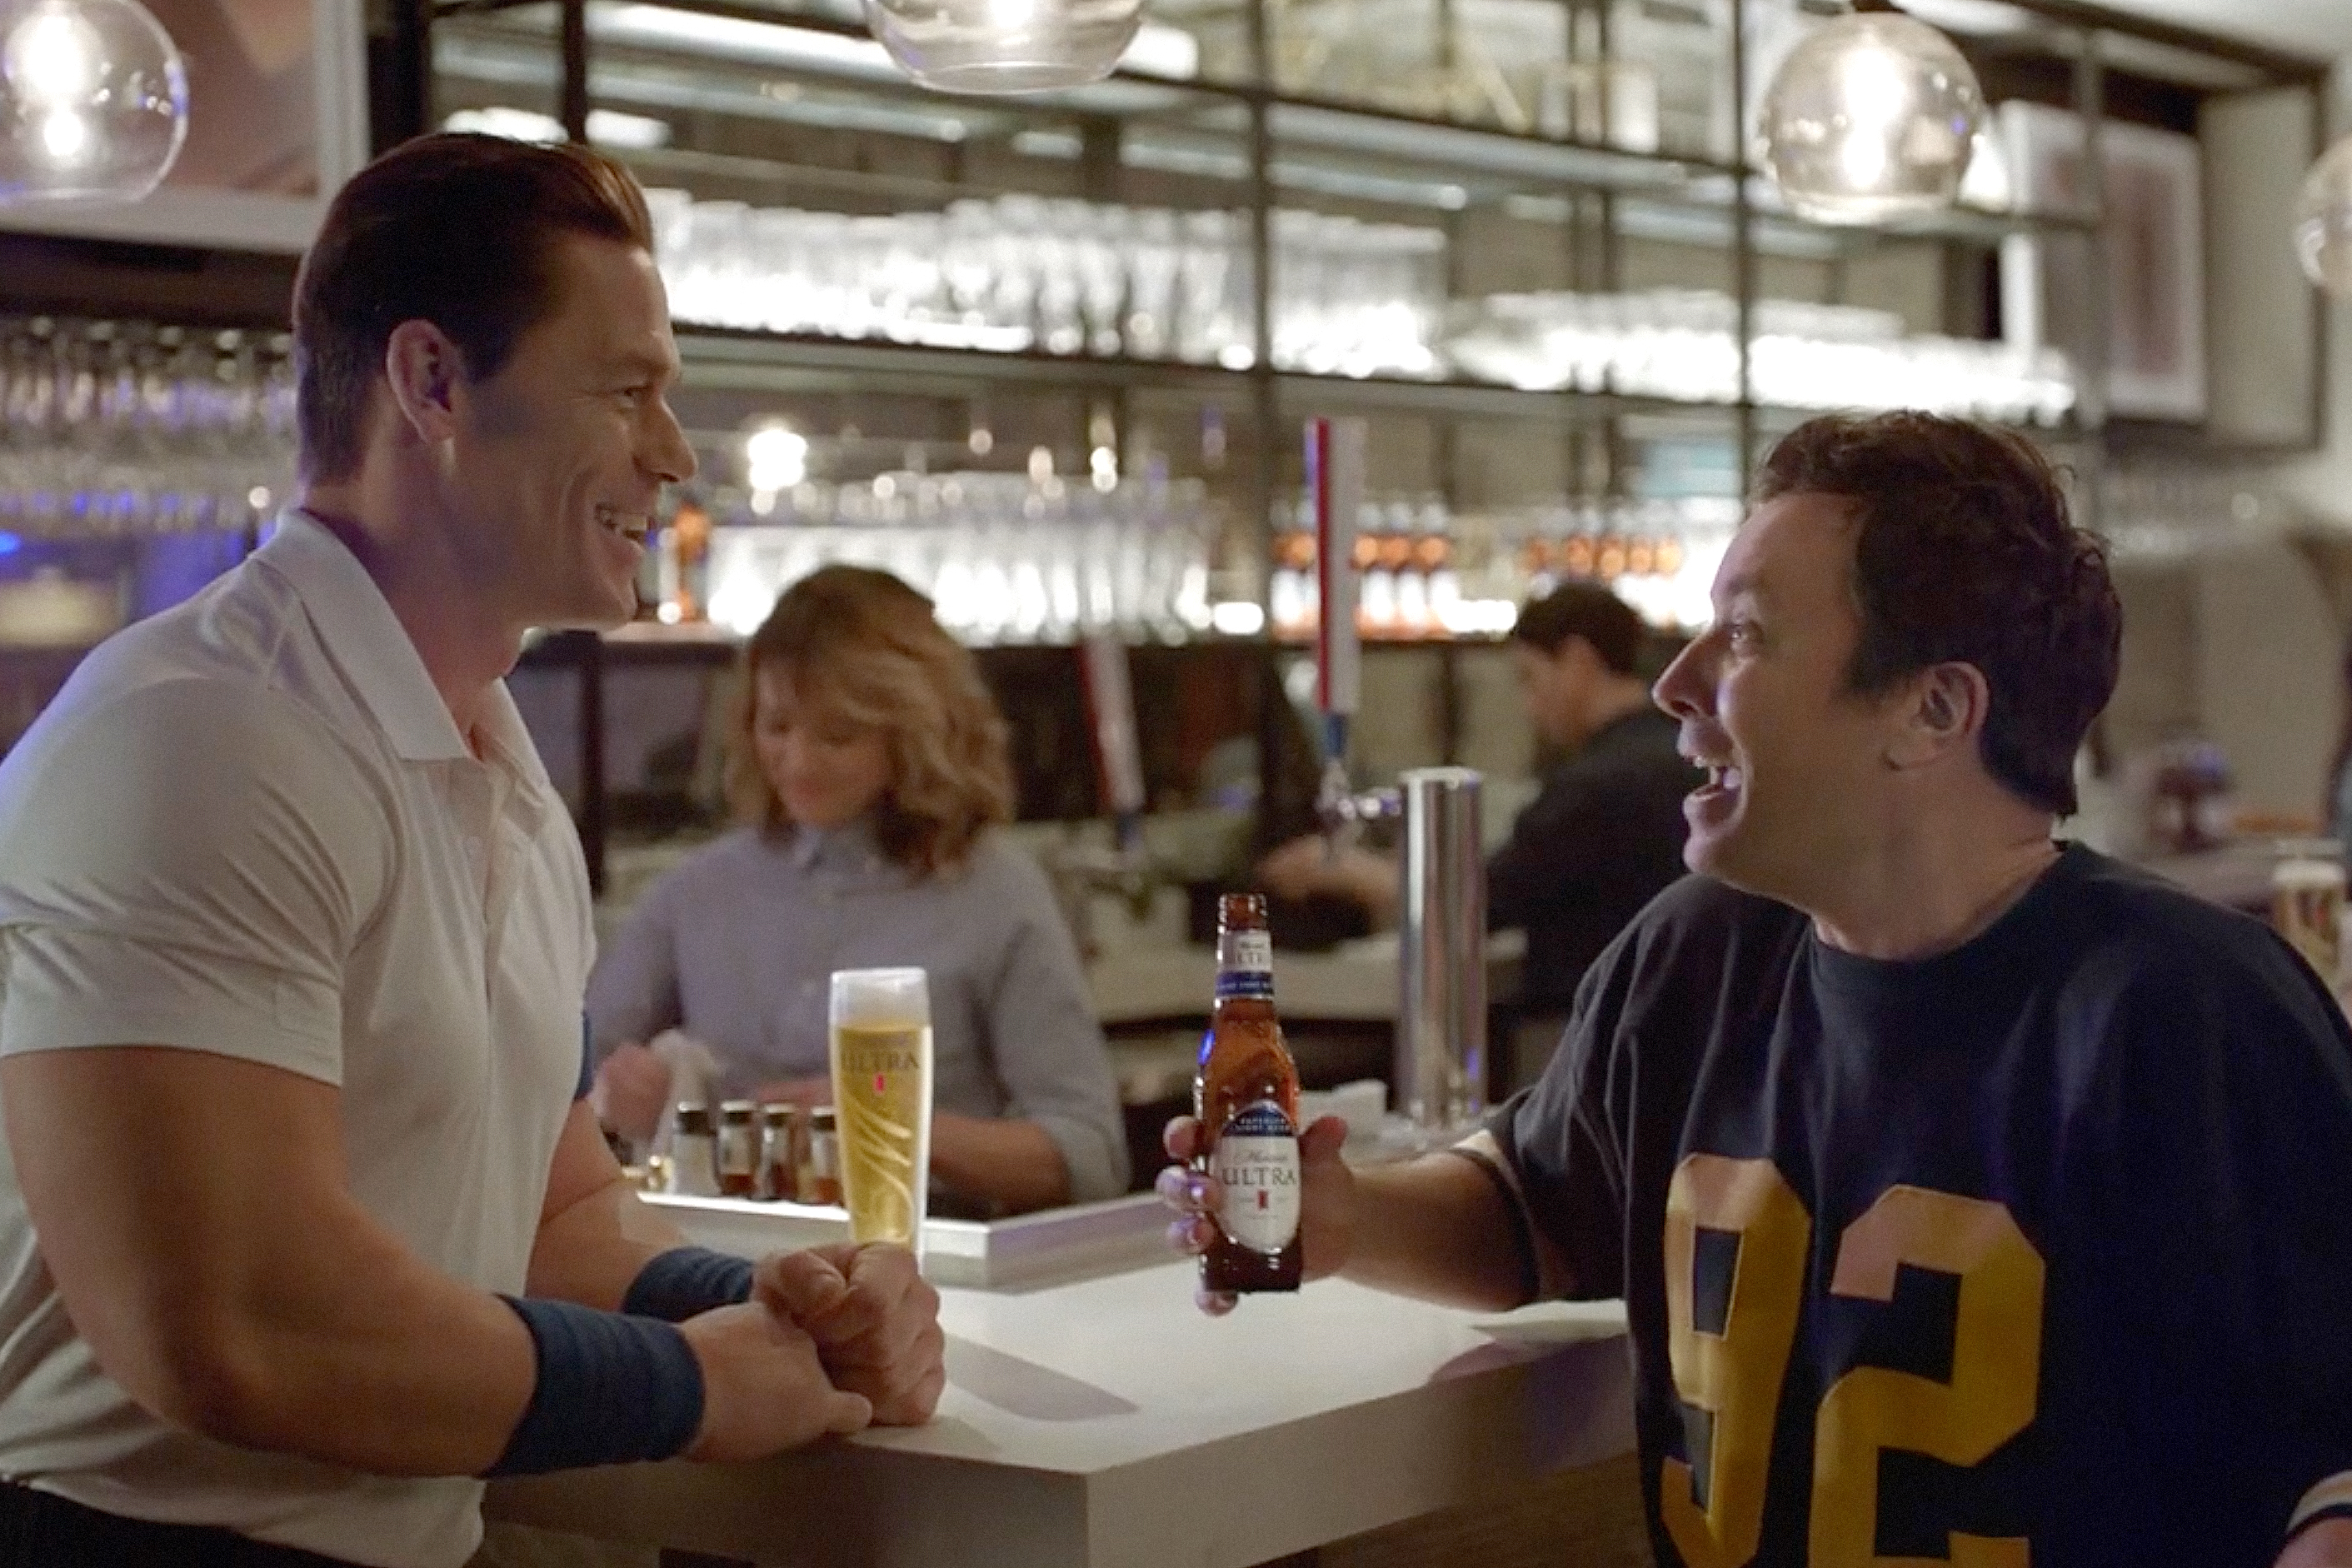 See Jimmy Fallon battle his workout phobia in Super Bowl ad for Michelob Ultra